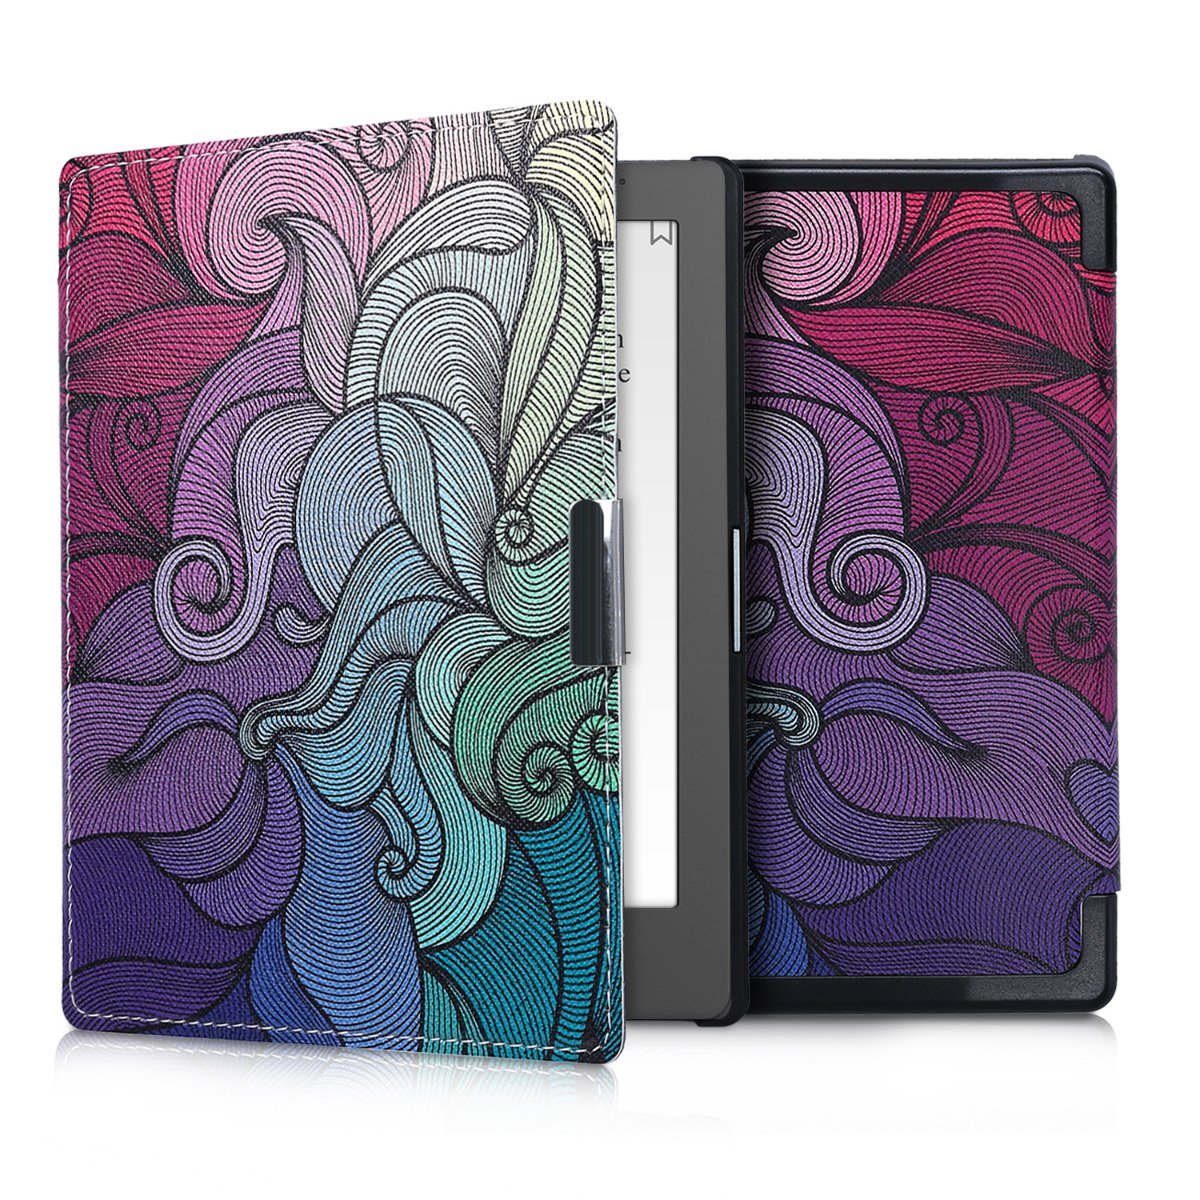 kwmobile Case for Kobo Aura Edition 1 - Book Style PU Leather Protective e-Reader Cover Folio Case - dark pink blue green